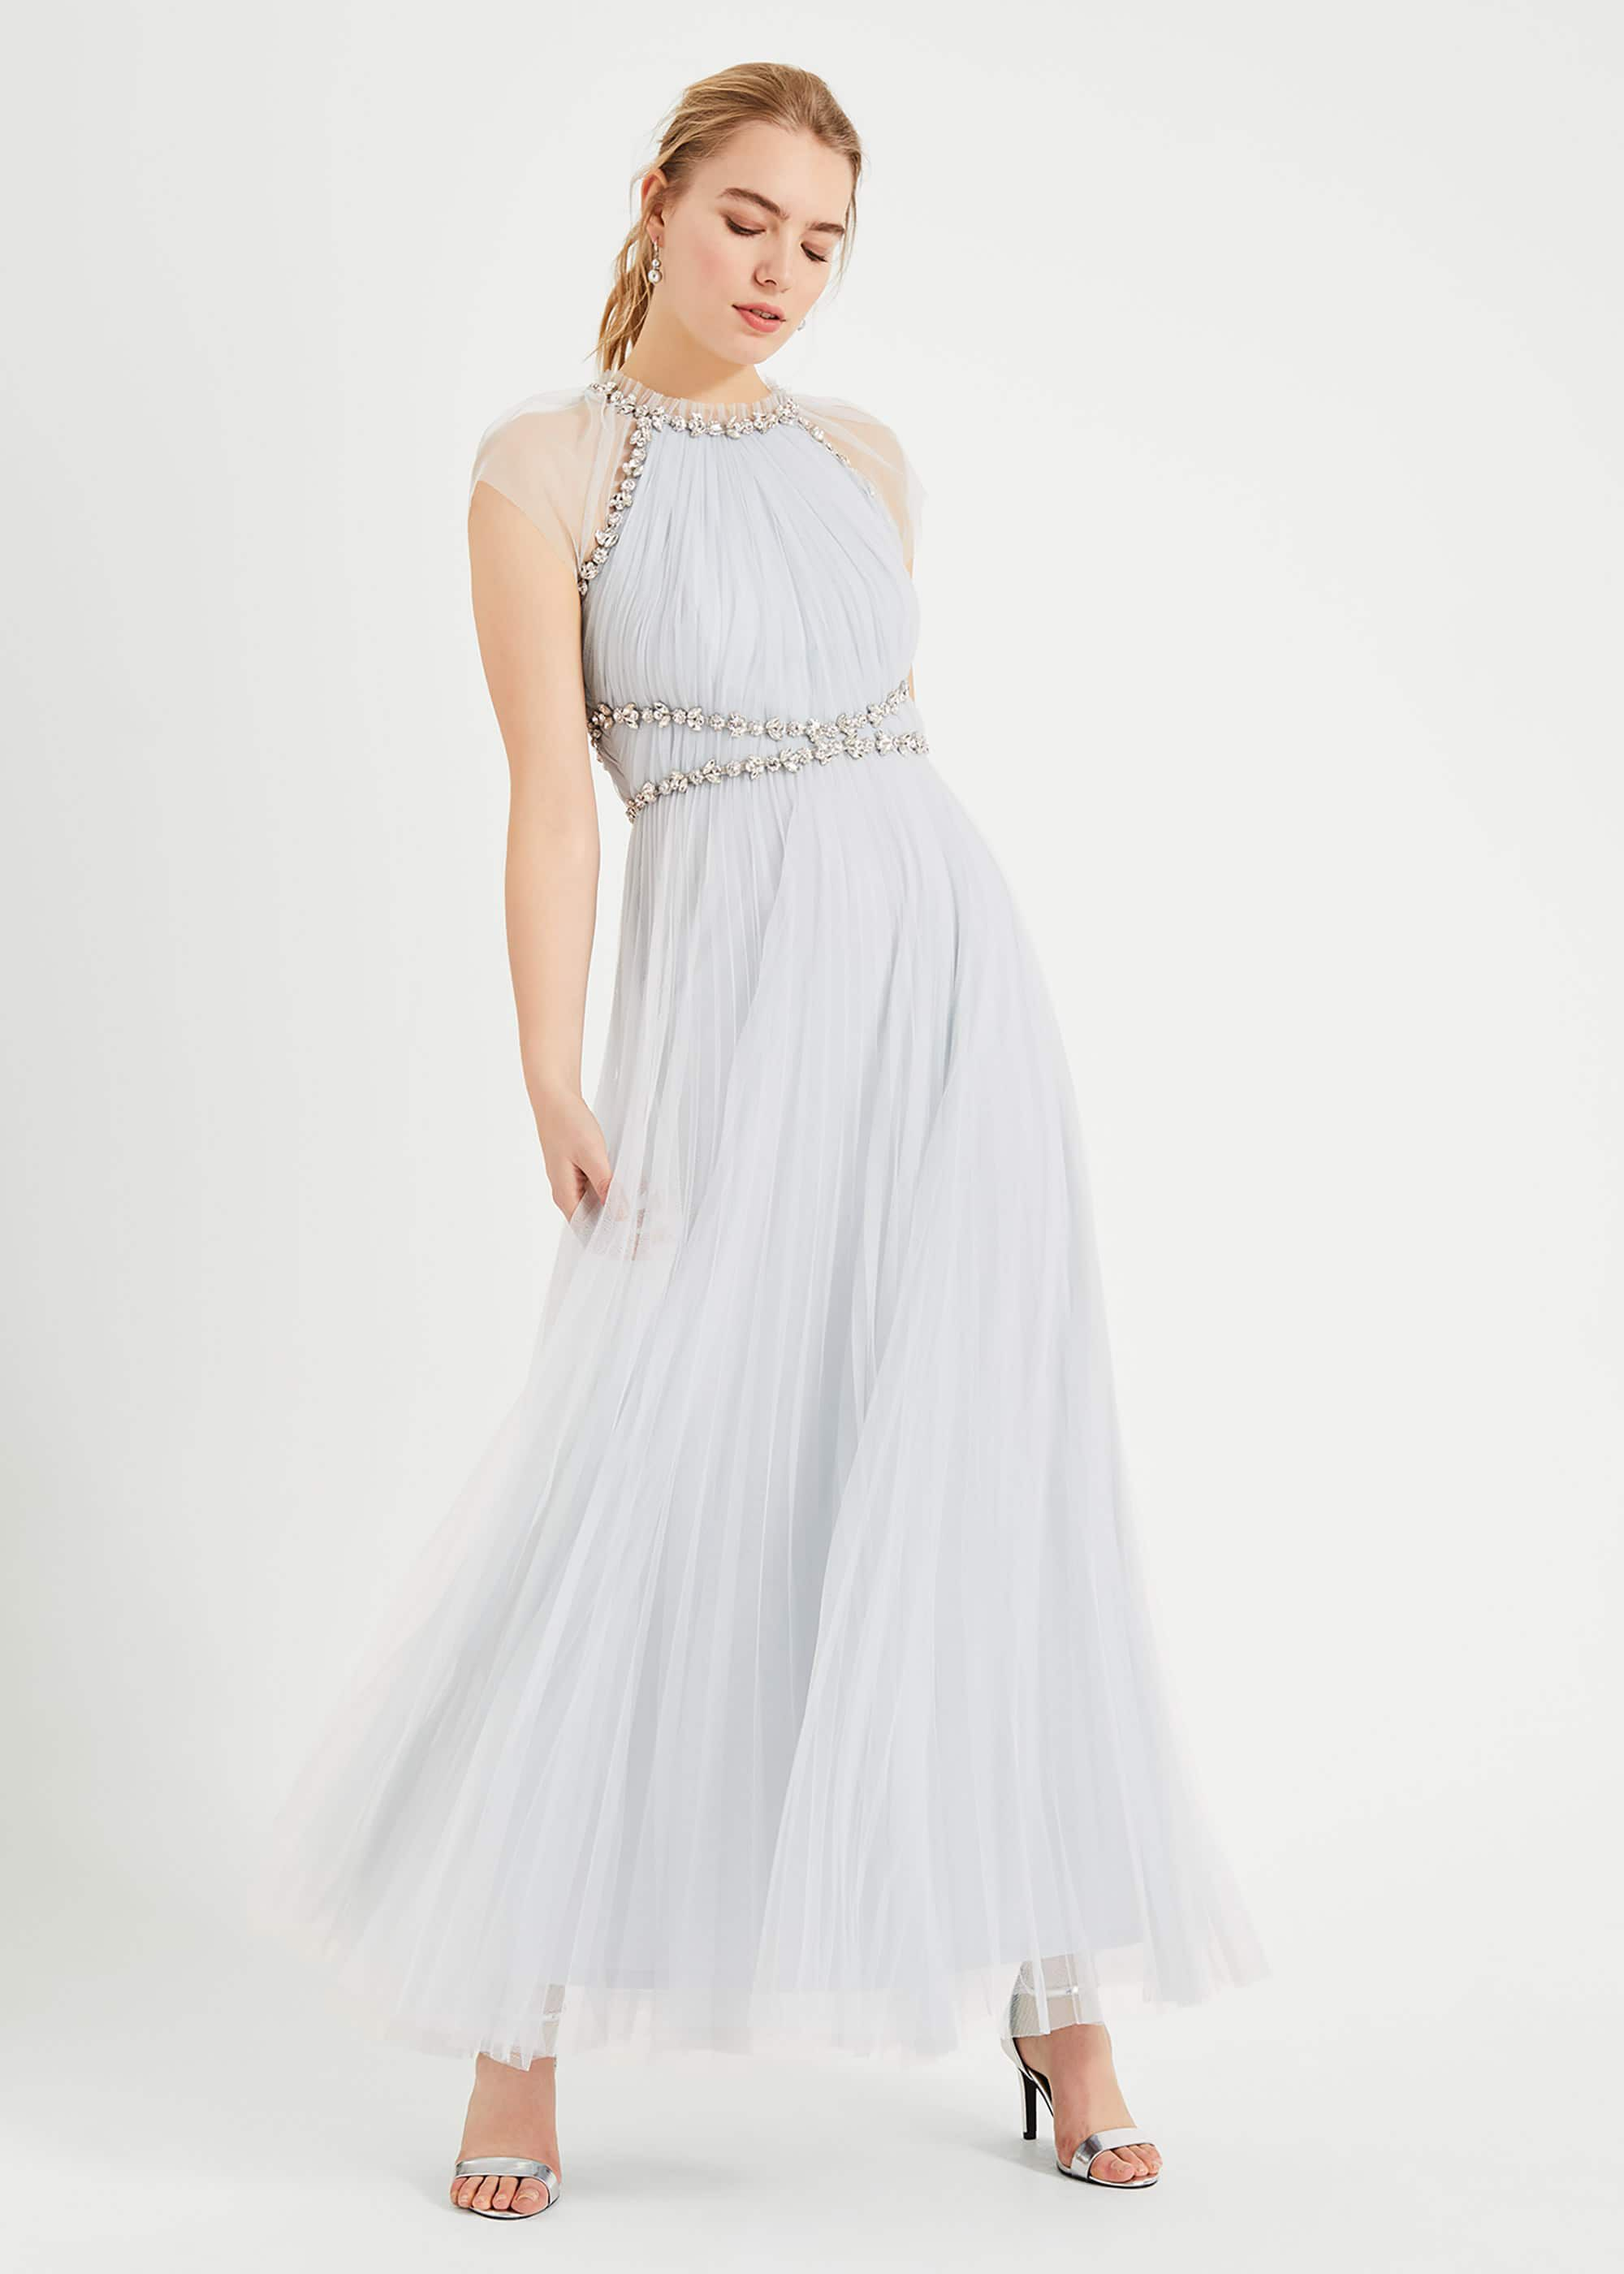 Phase Eight Gerona Pleated Tulle Dress, Blue, Maxi, Occasion Dress